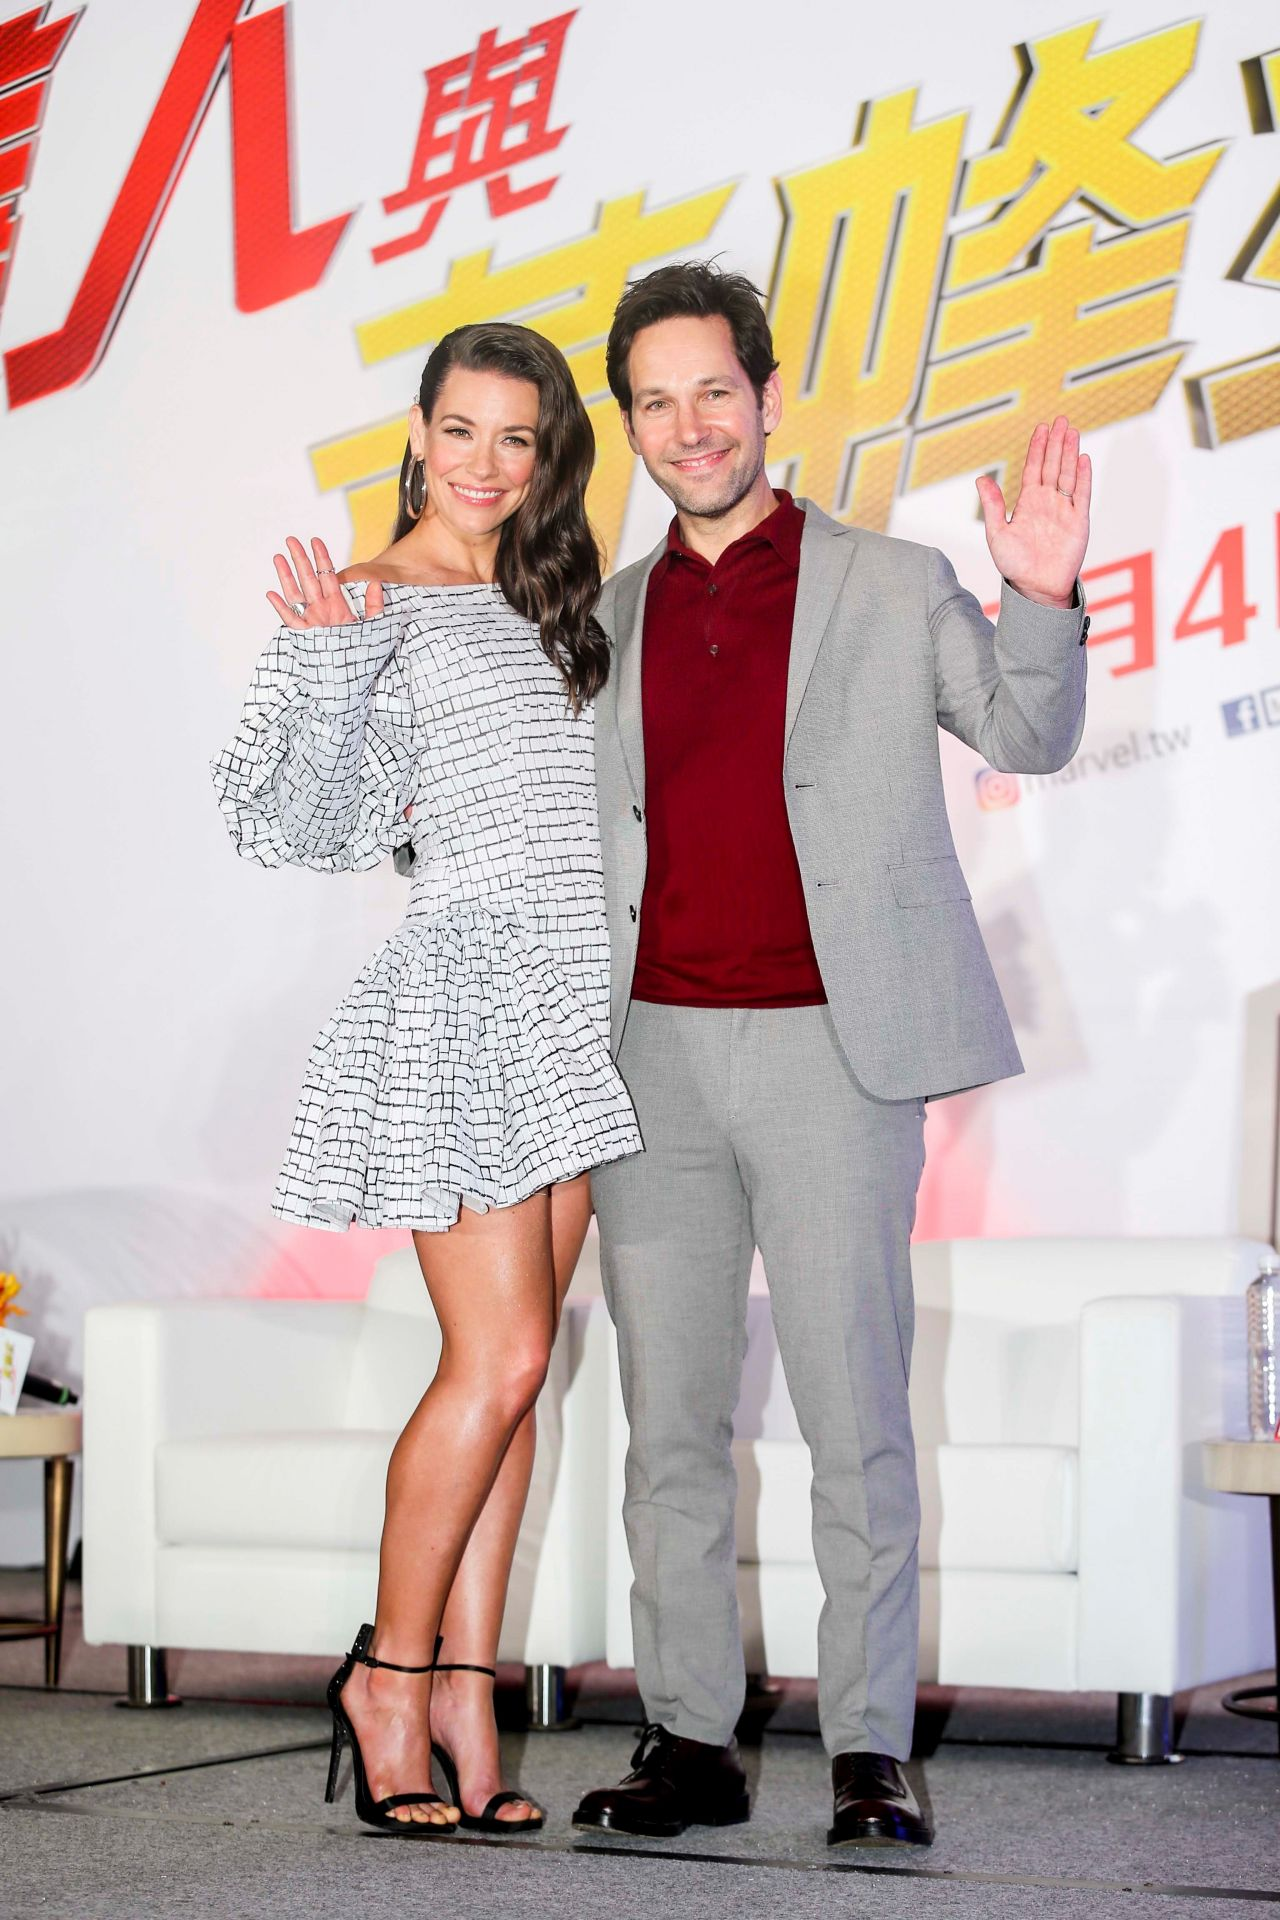 https://celebmafia.com/wp-content/uploads/2018/06/evangeline-lilly-ant-man-and-the-wasp-press-conference-in-taipei-4.jpg